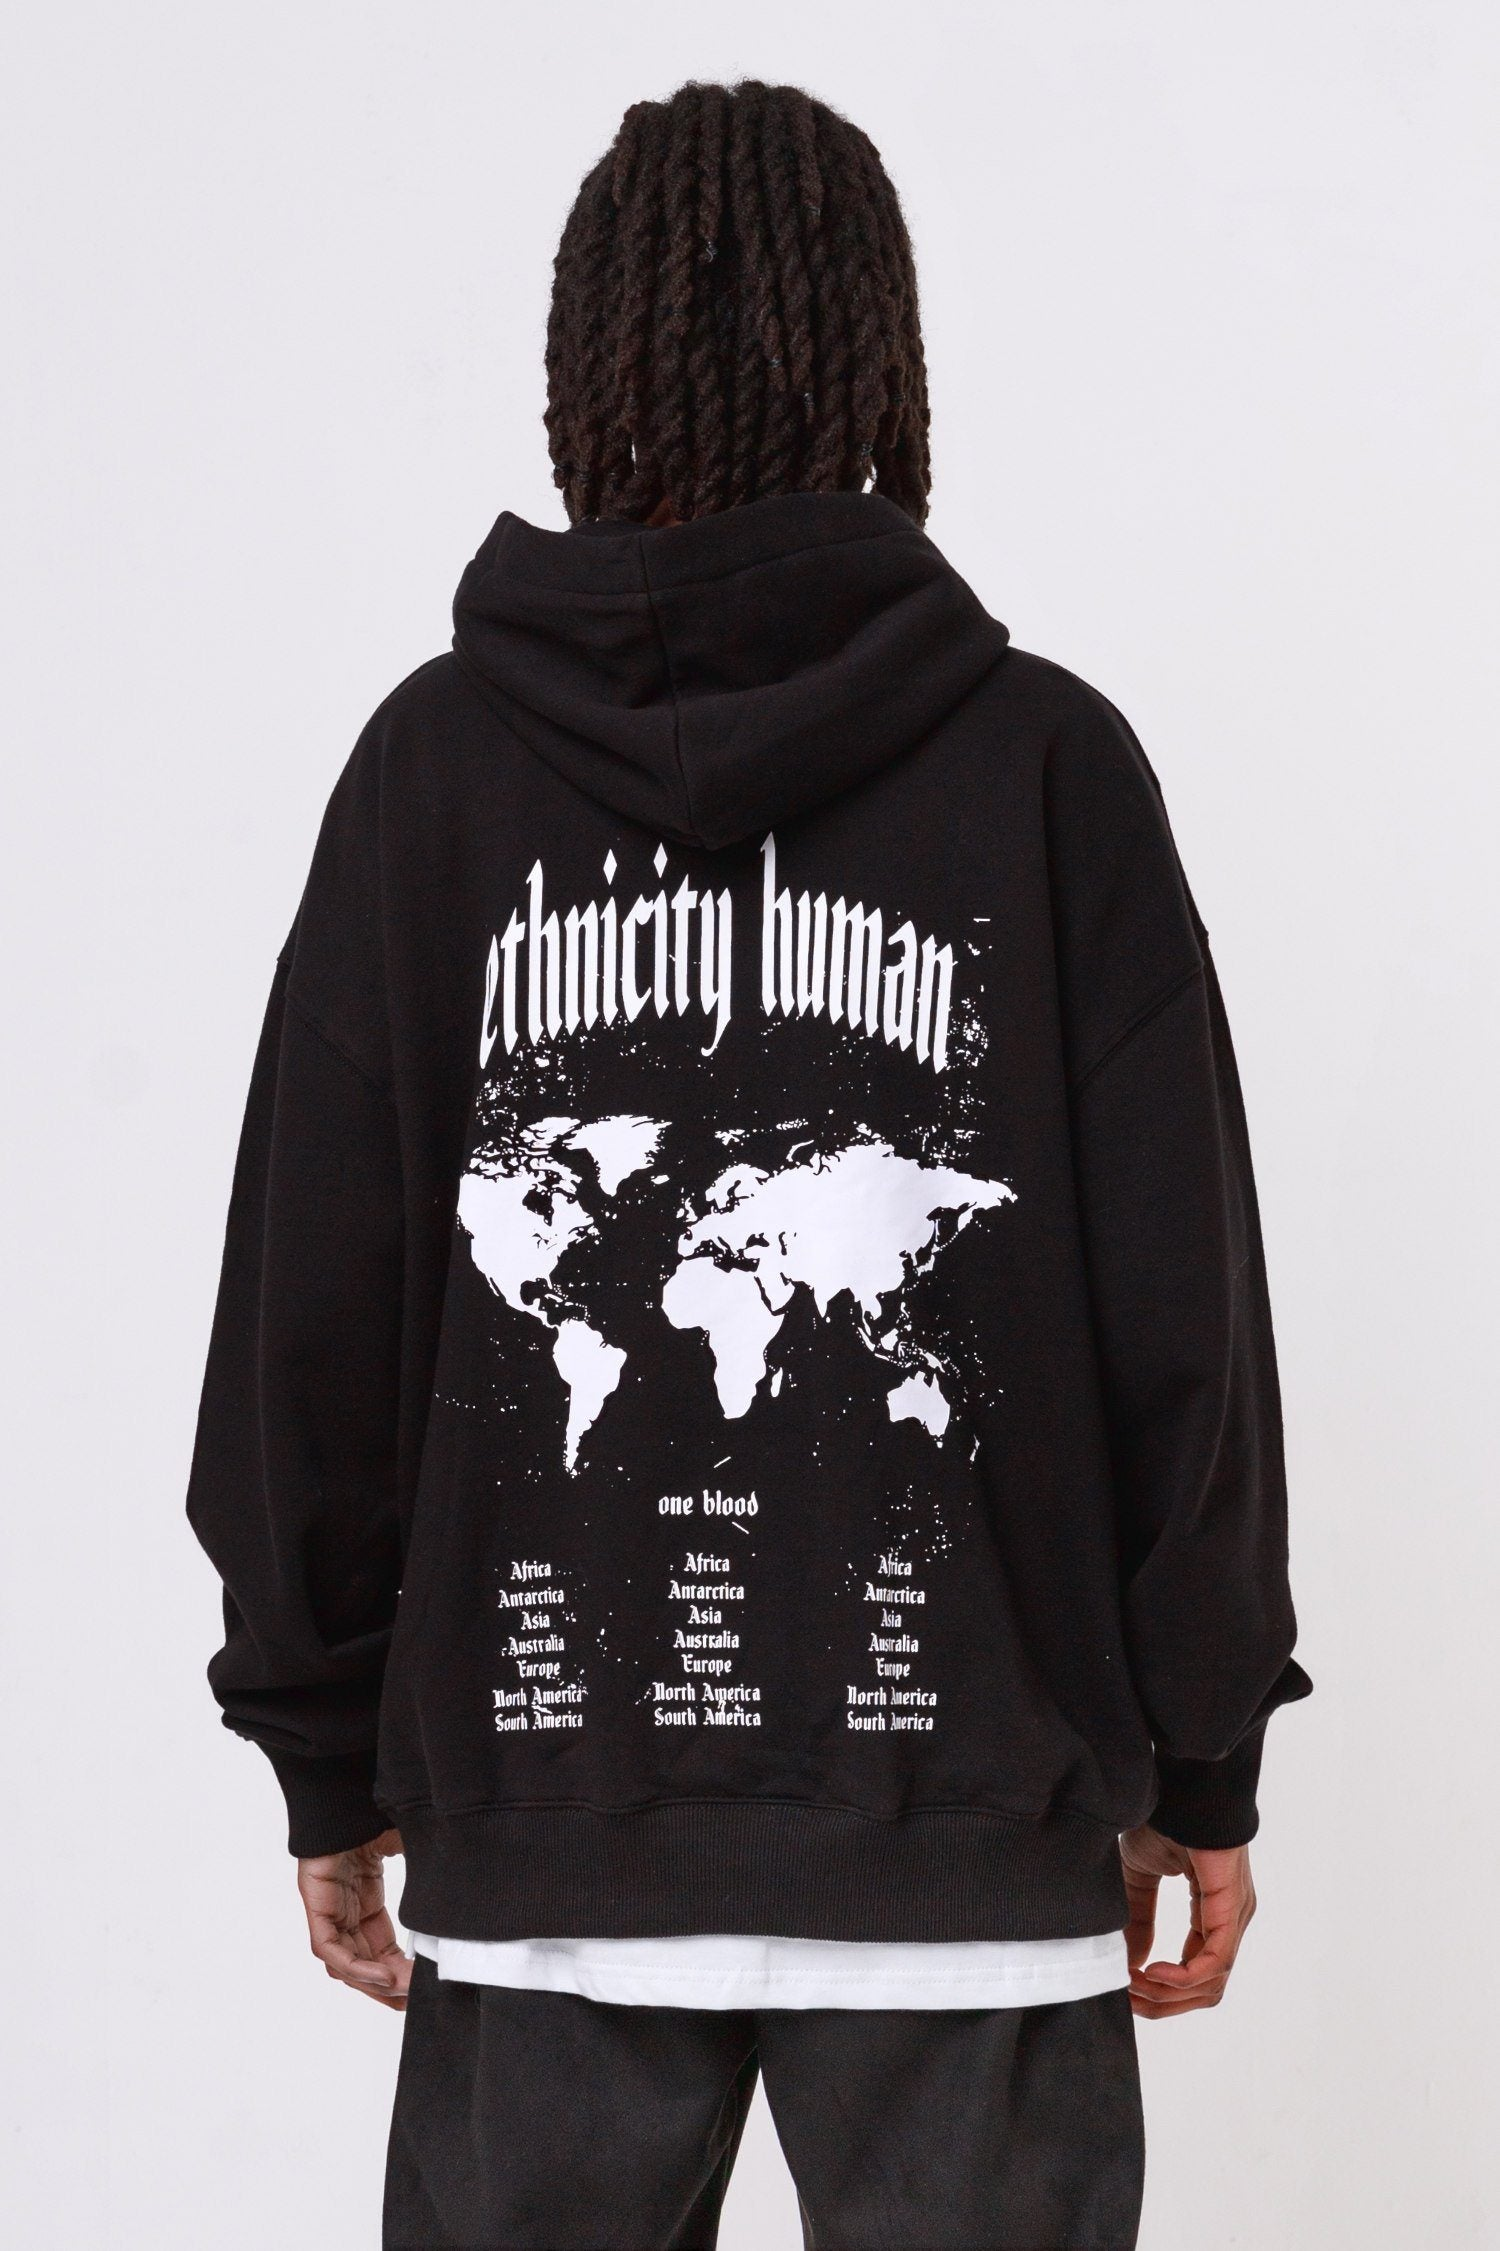 World Oversized Hoodie Black Hoodies One blood